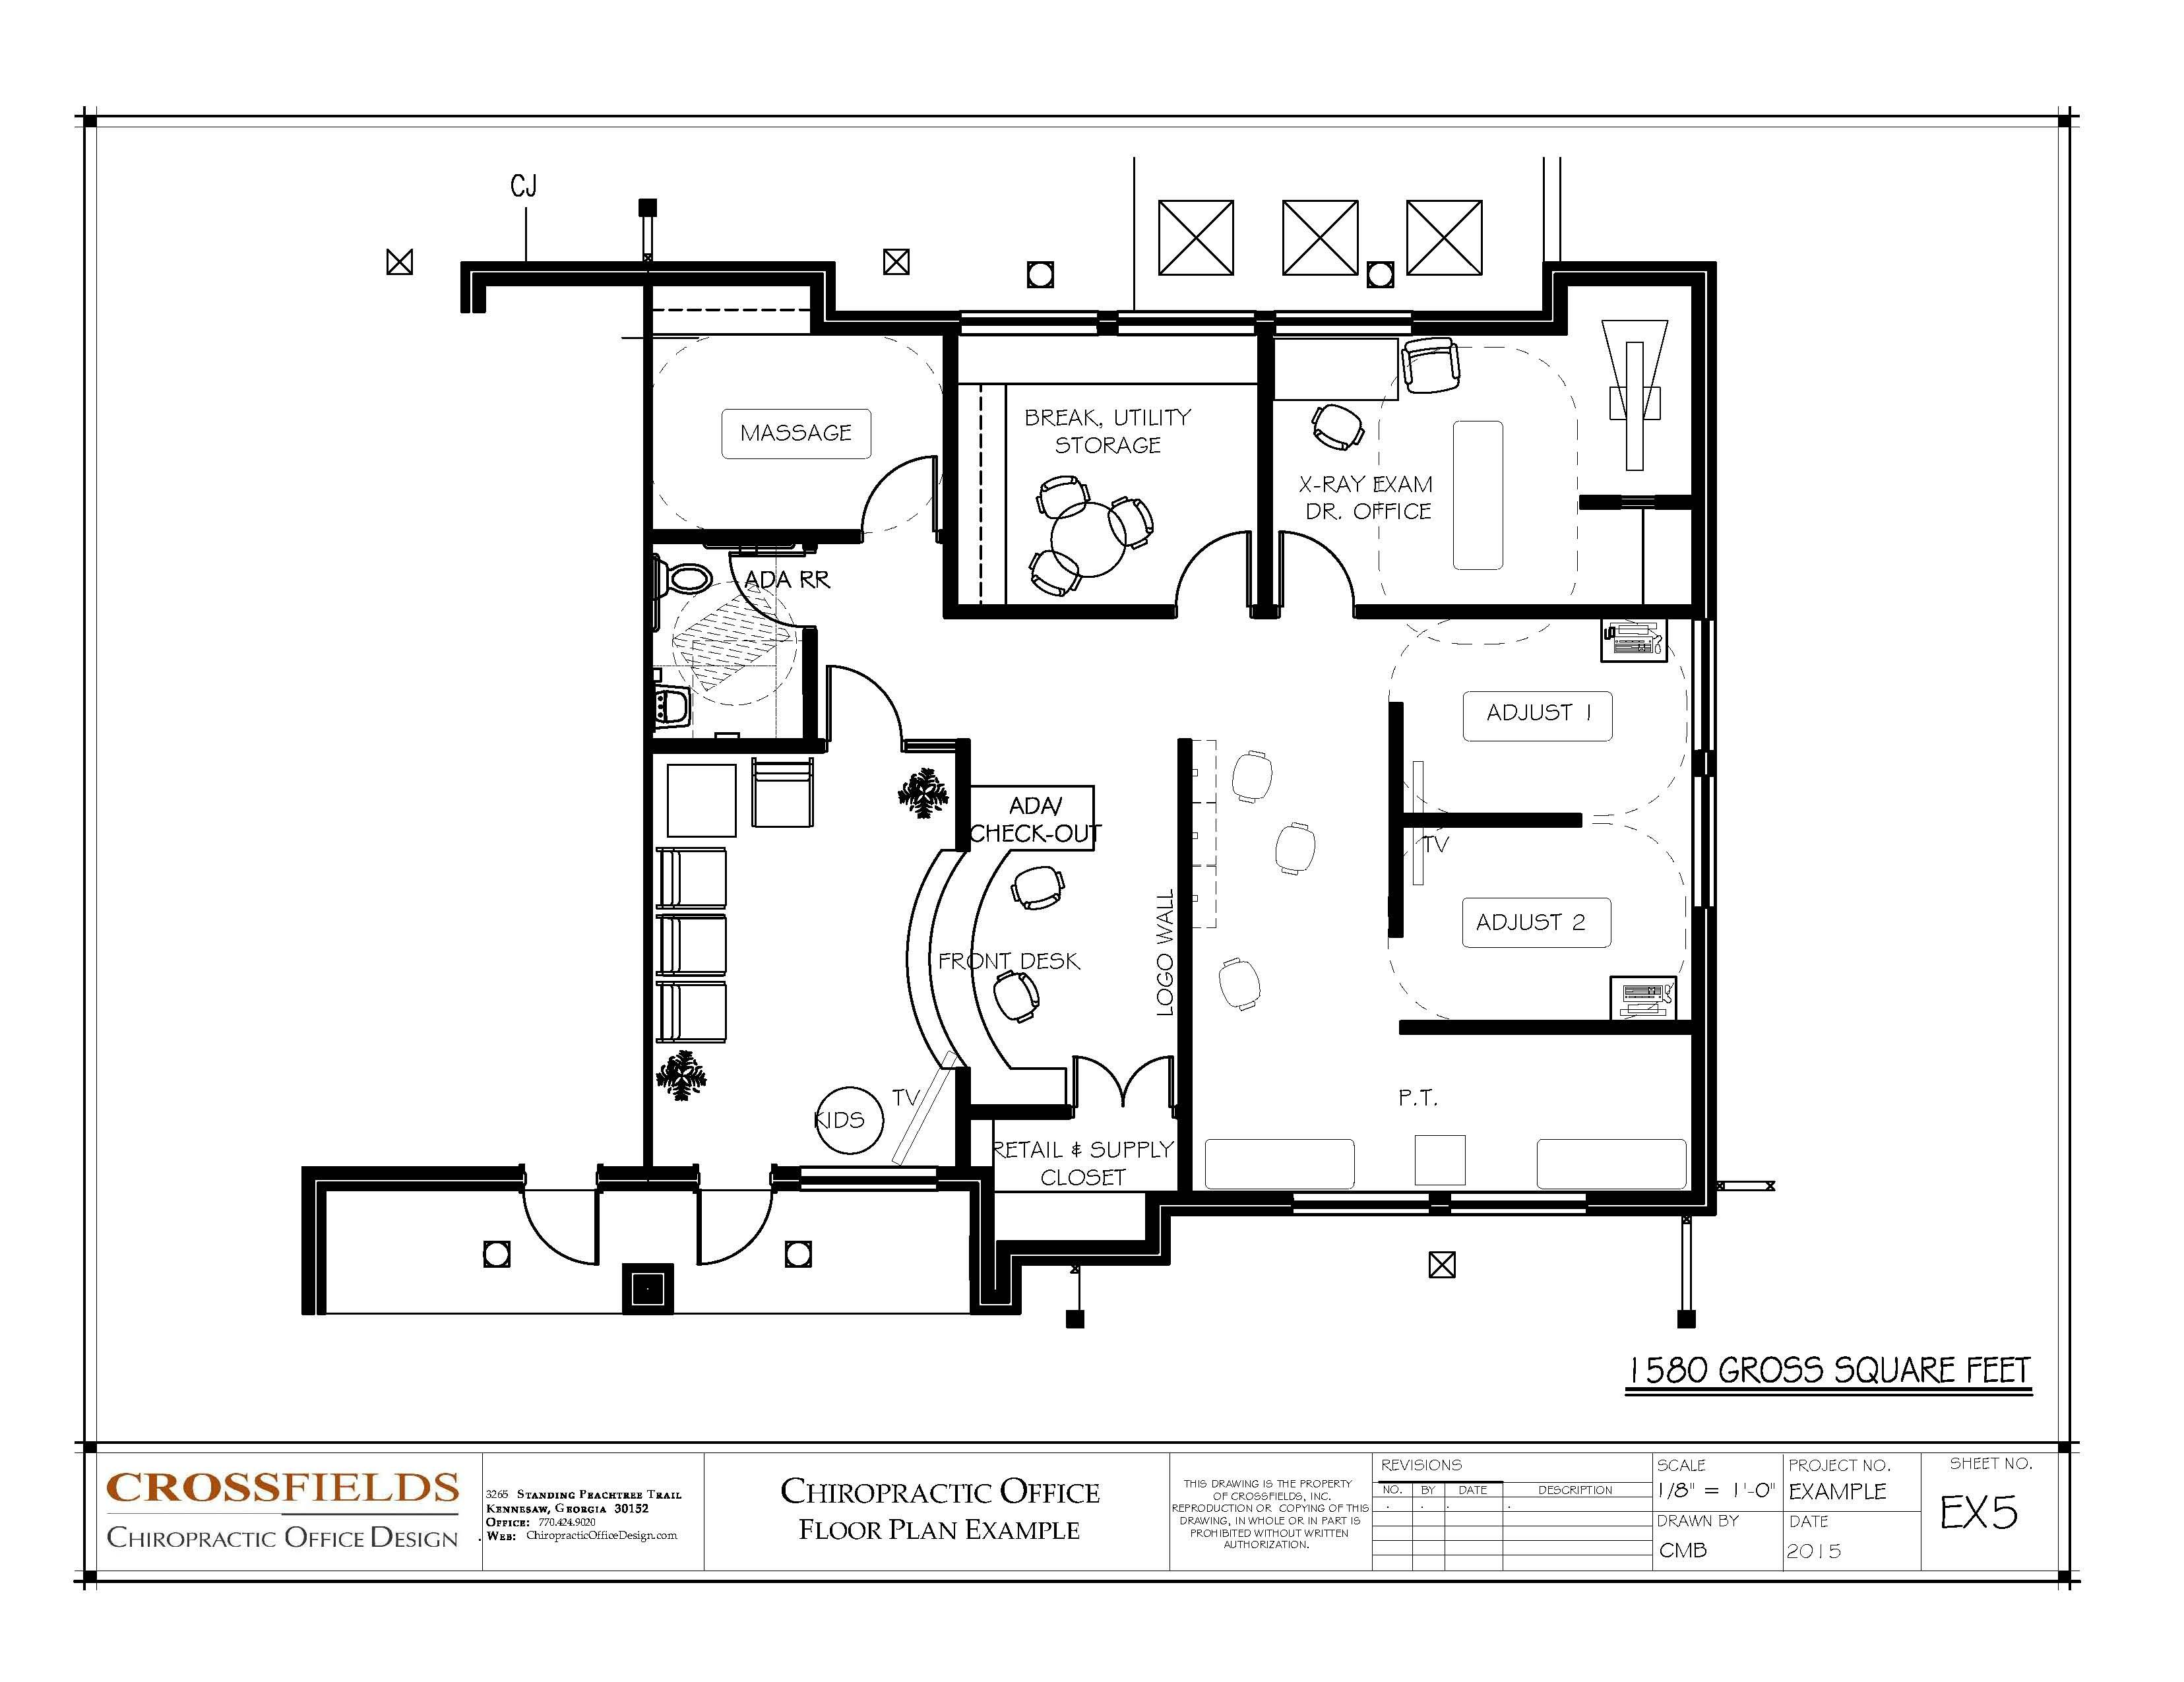 Floor Plans For Physical Therapy Clinic: Pin By Heidi Christensen On Counseling